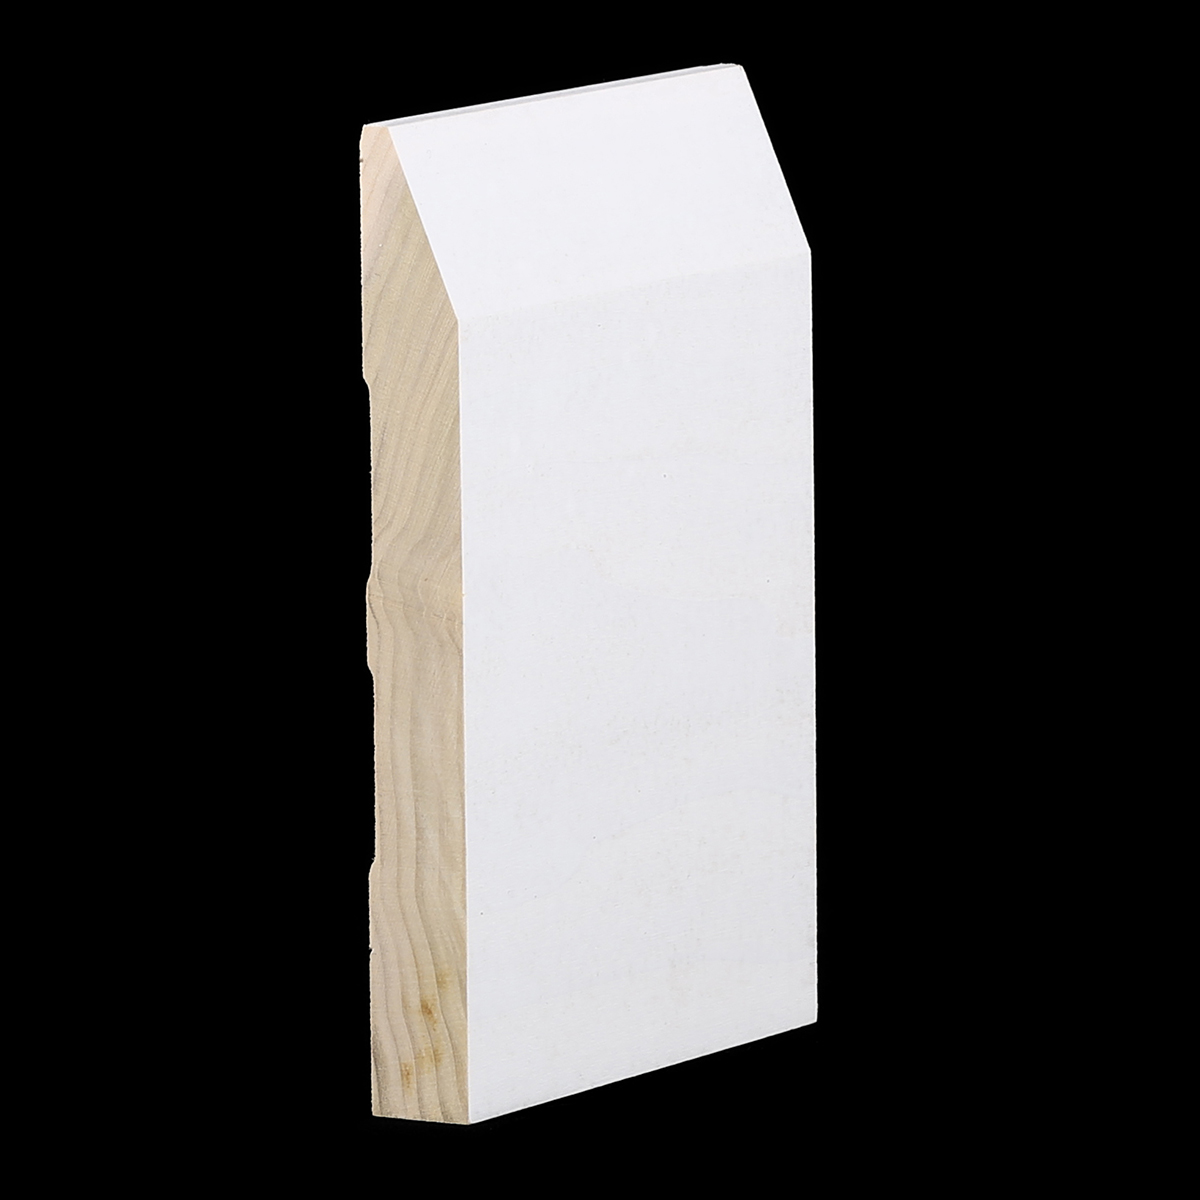 Craftsman Baseboard Profiles Door Casing Styles Pictures To Pin On